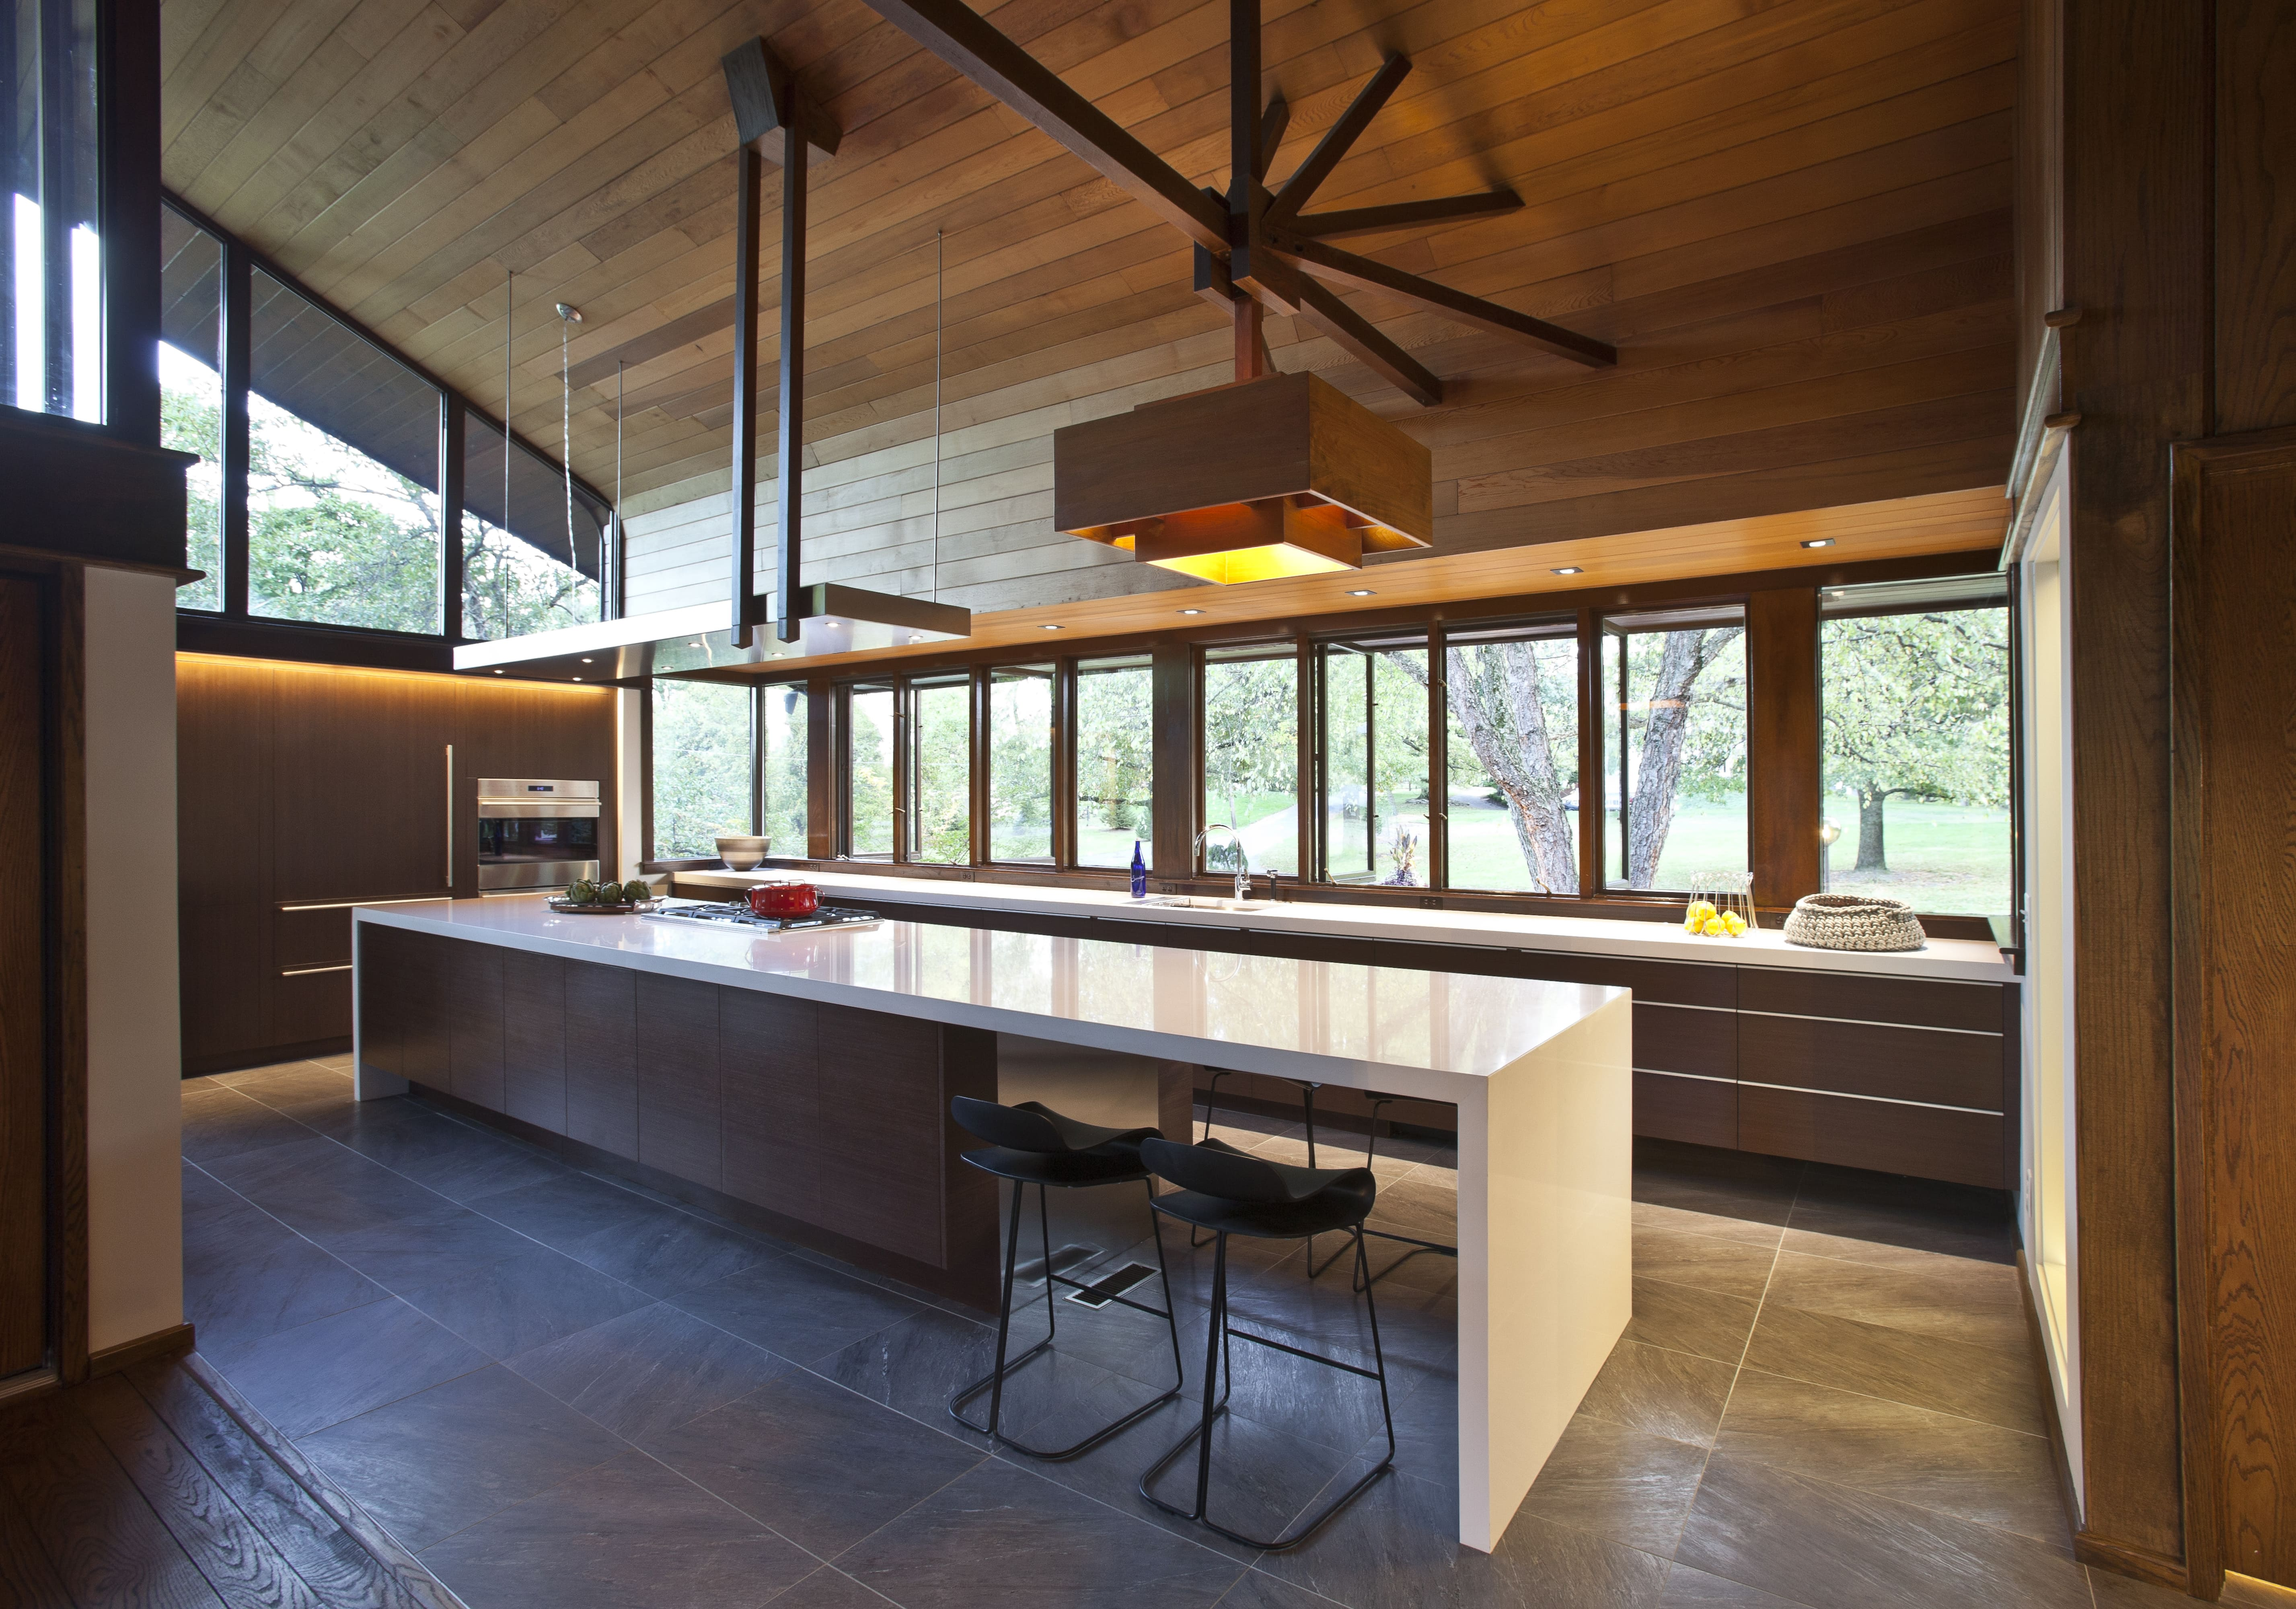 Feature photo of the custom kitchen island, blending modern interiors with mid-century architecture, design by interior designer, RM Interiors in Cincinnati.